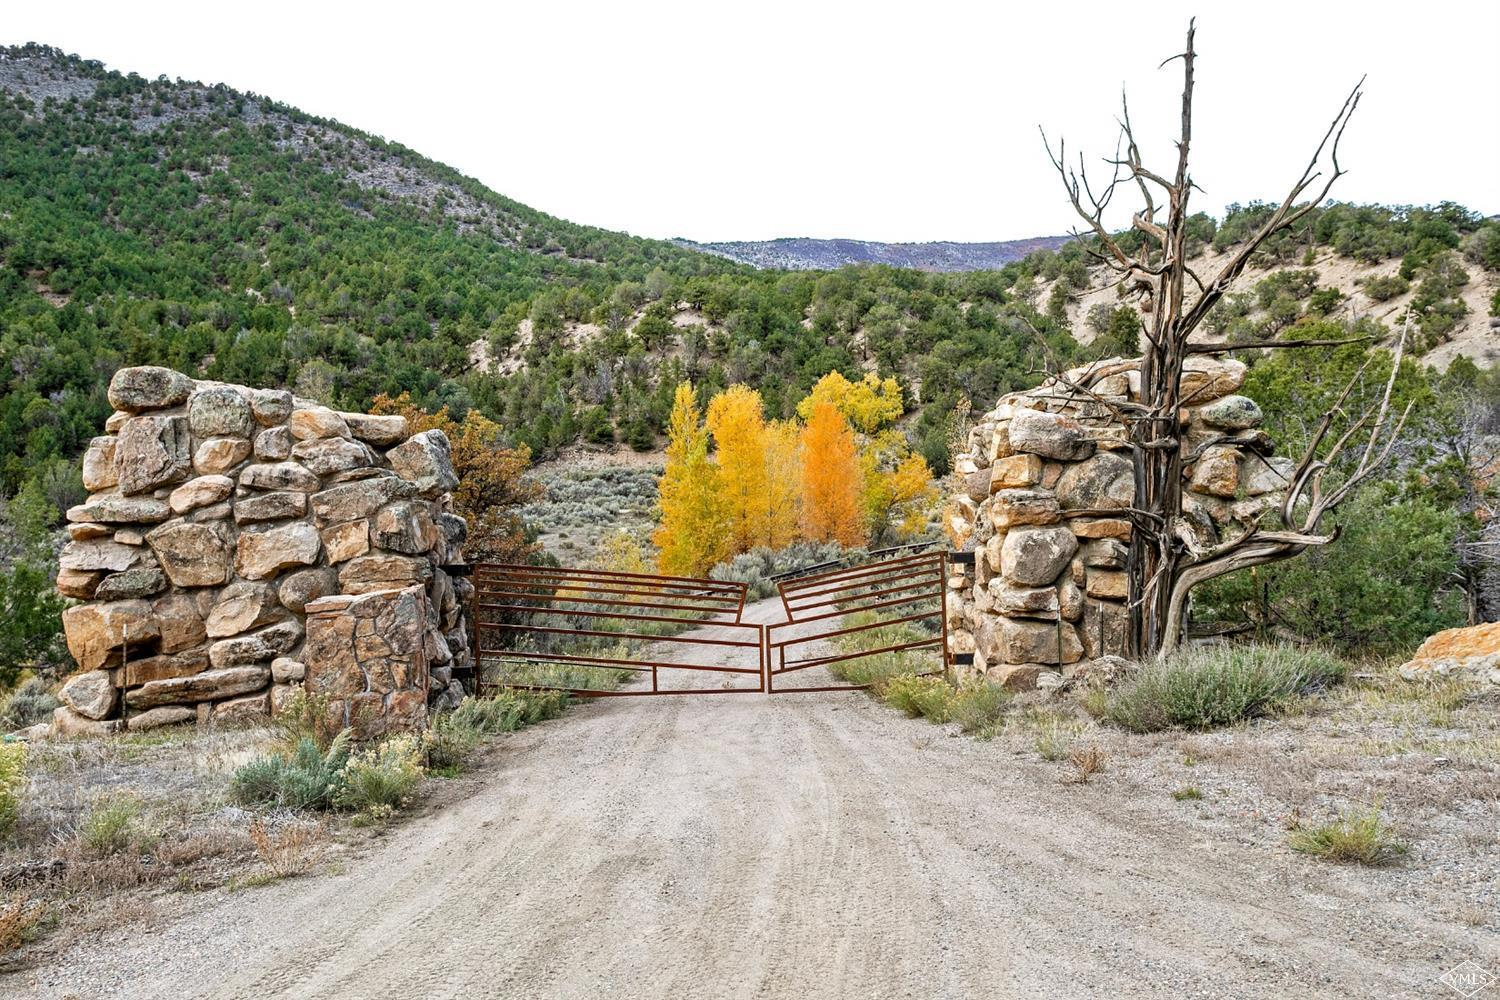 2742 Sweetwater Road, 2, Gypsum, CO 81637 Property Photo - Gypsum, CO real estate listing